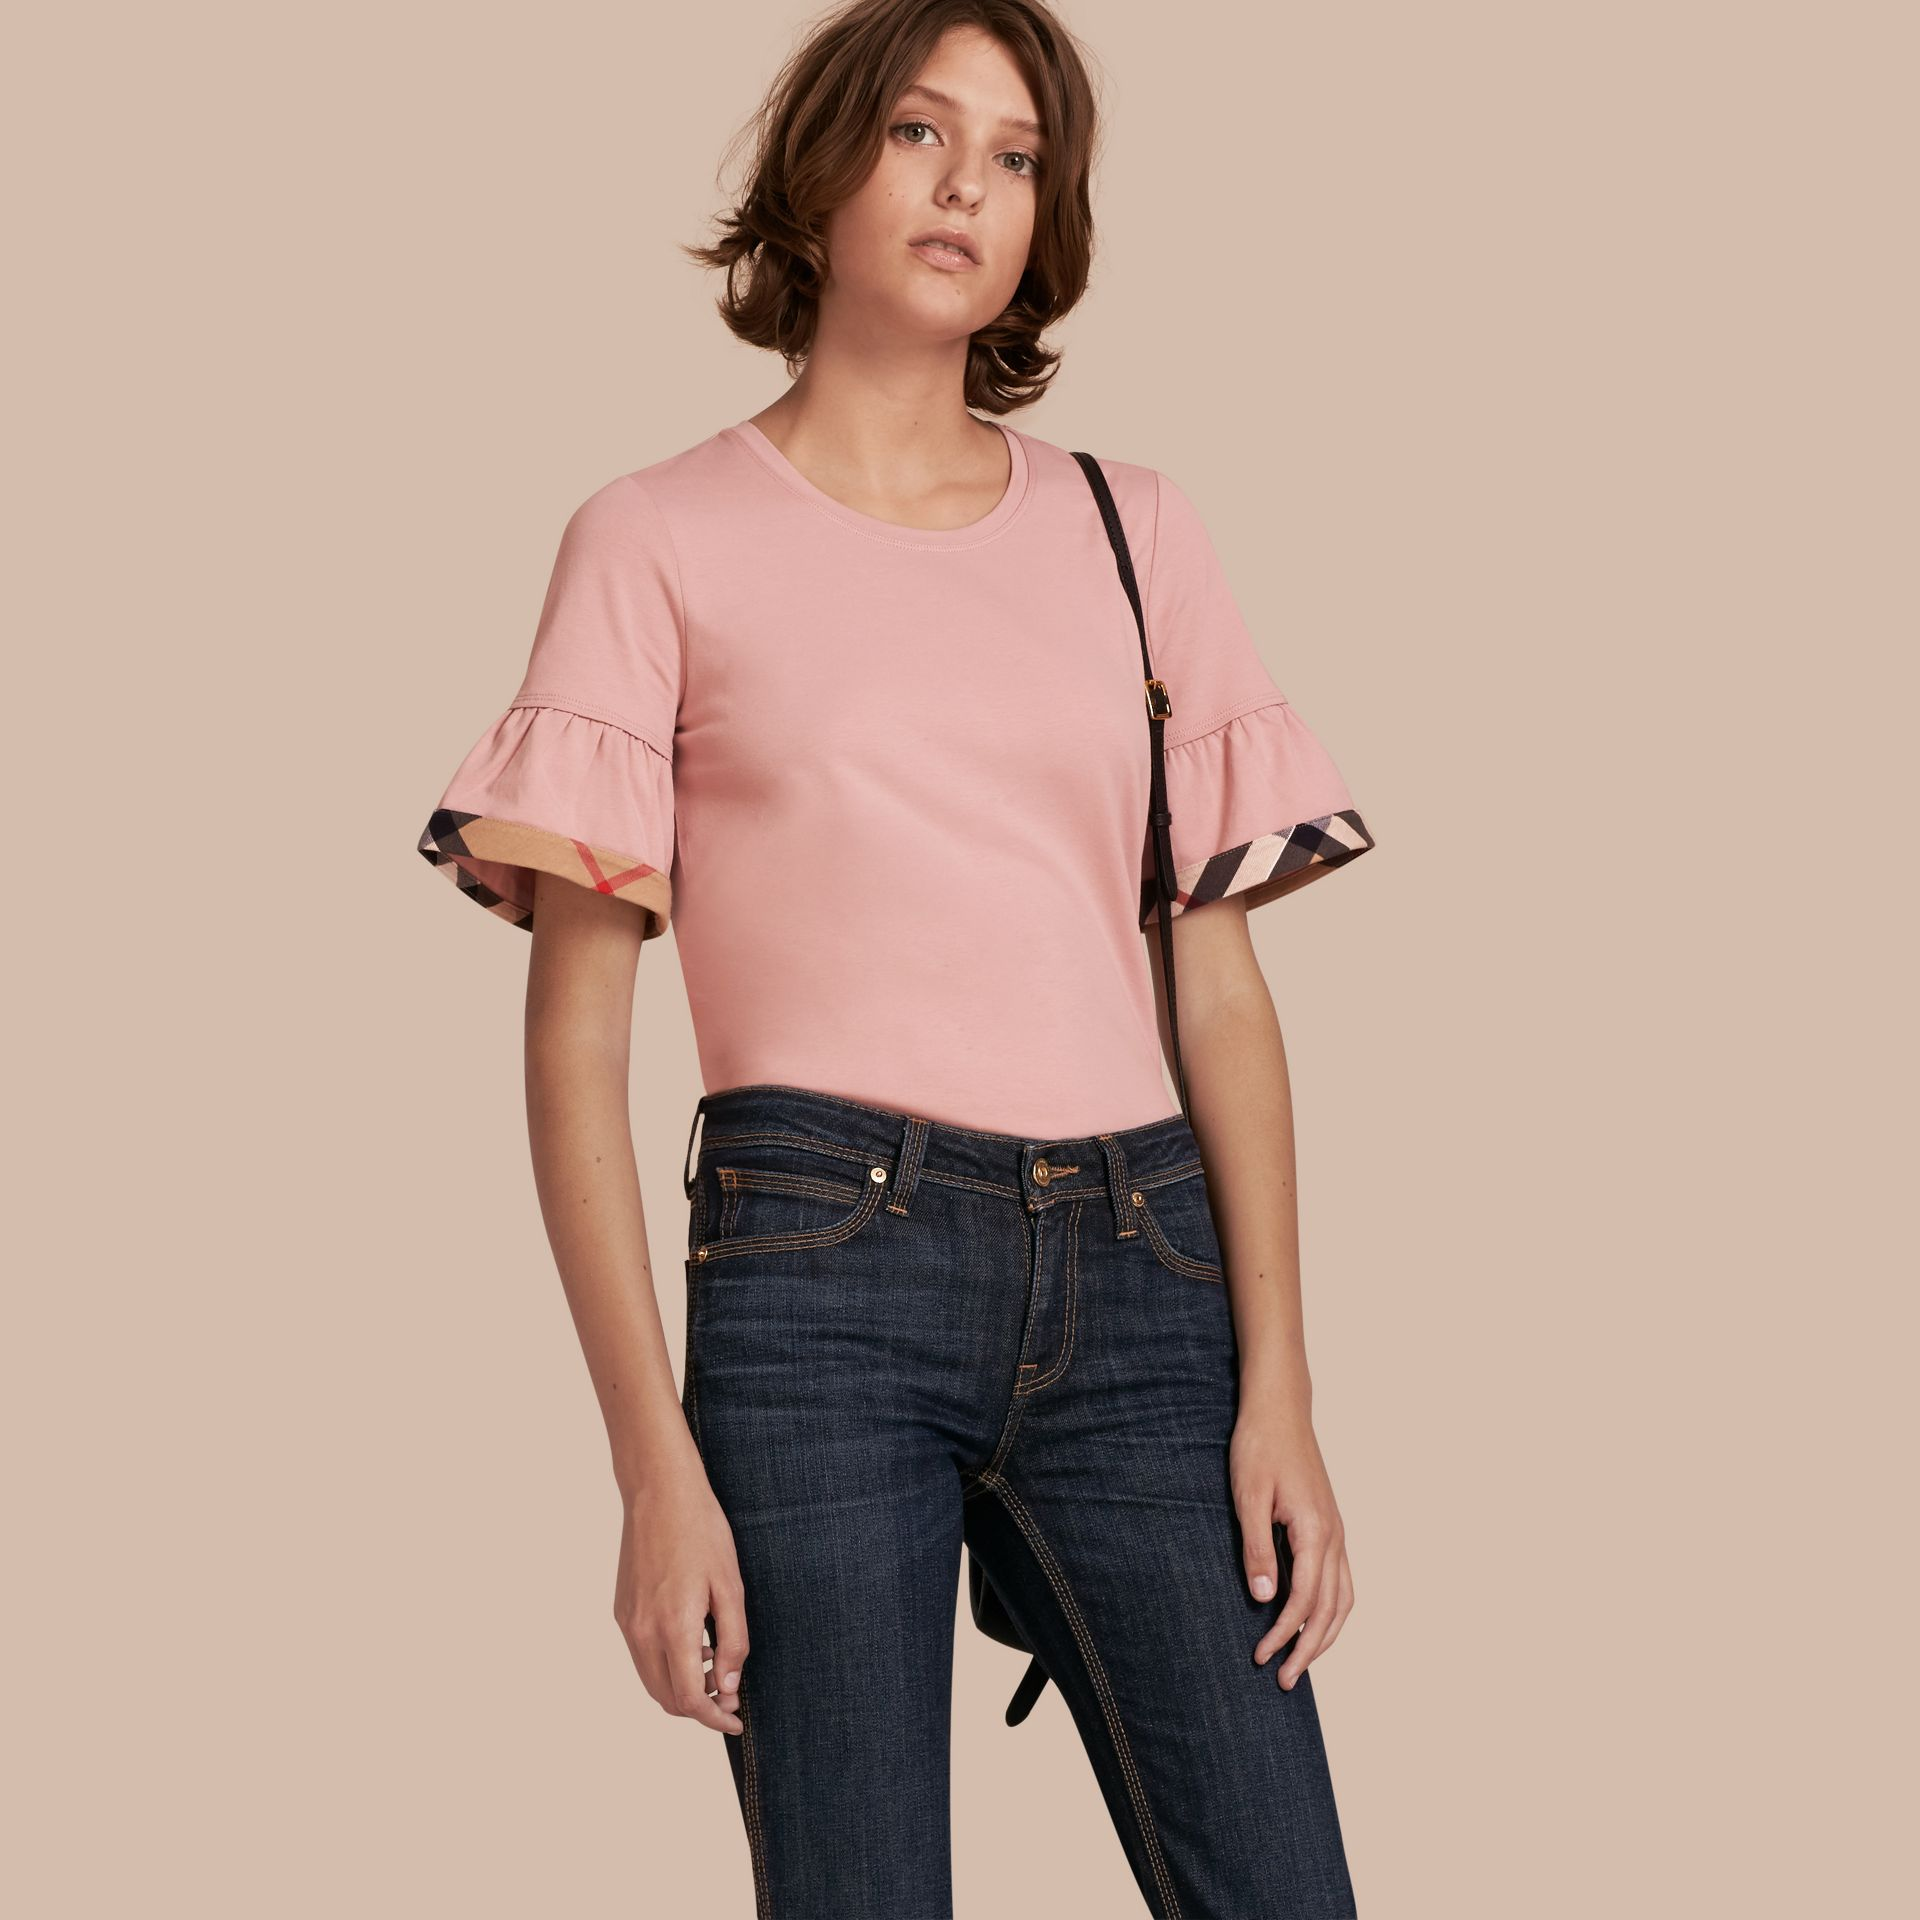 Ash rose Stretch Cotton T-shirt with Check Trim Ruffles Ash Rose - gallery image 1